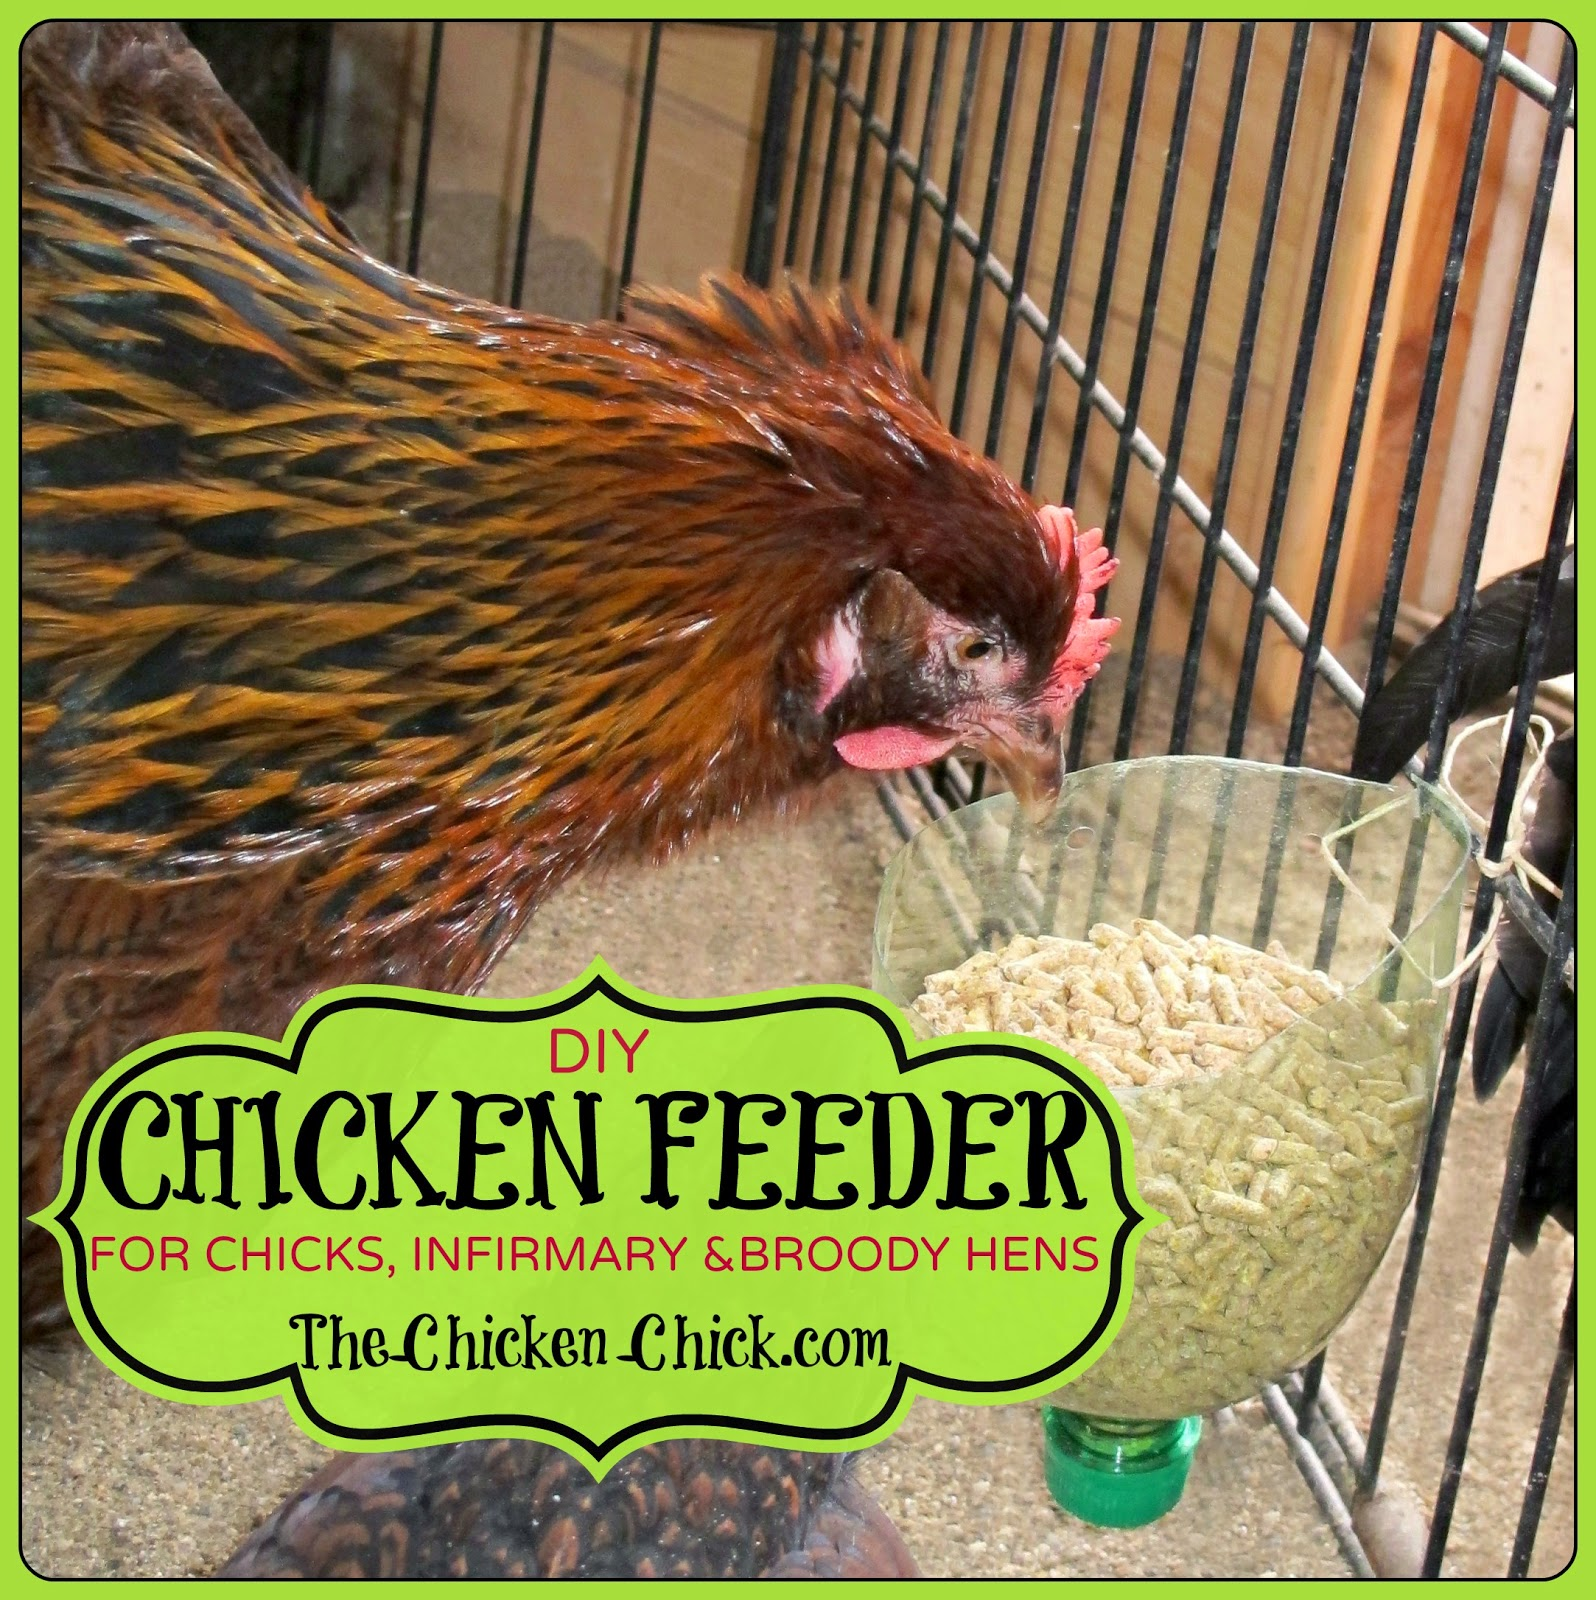 I ran out of chicken feeders recently and had an Ah-HA! moment that led me to create feeders from recycled plastic bottles. For a variety of reasons including frostbite, quarantine, feather picking injuries and brooding new baby chicks, I have had a basement full of chickens in rabbit cages, dog kennels and pet carriers for months.